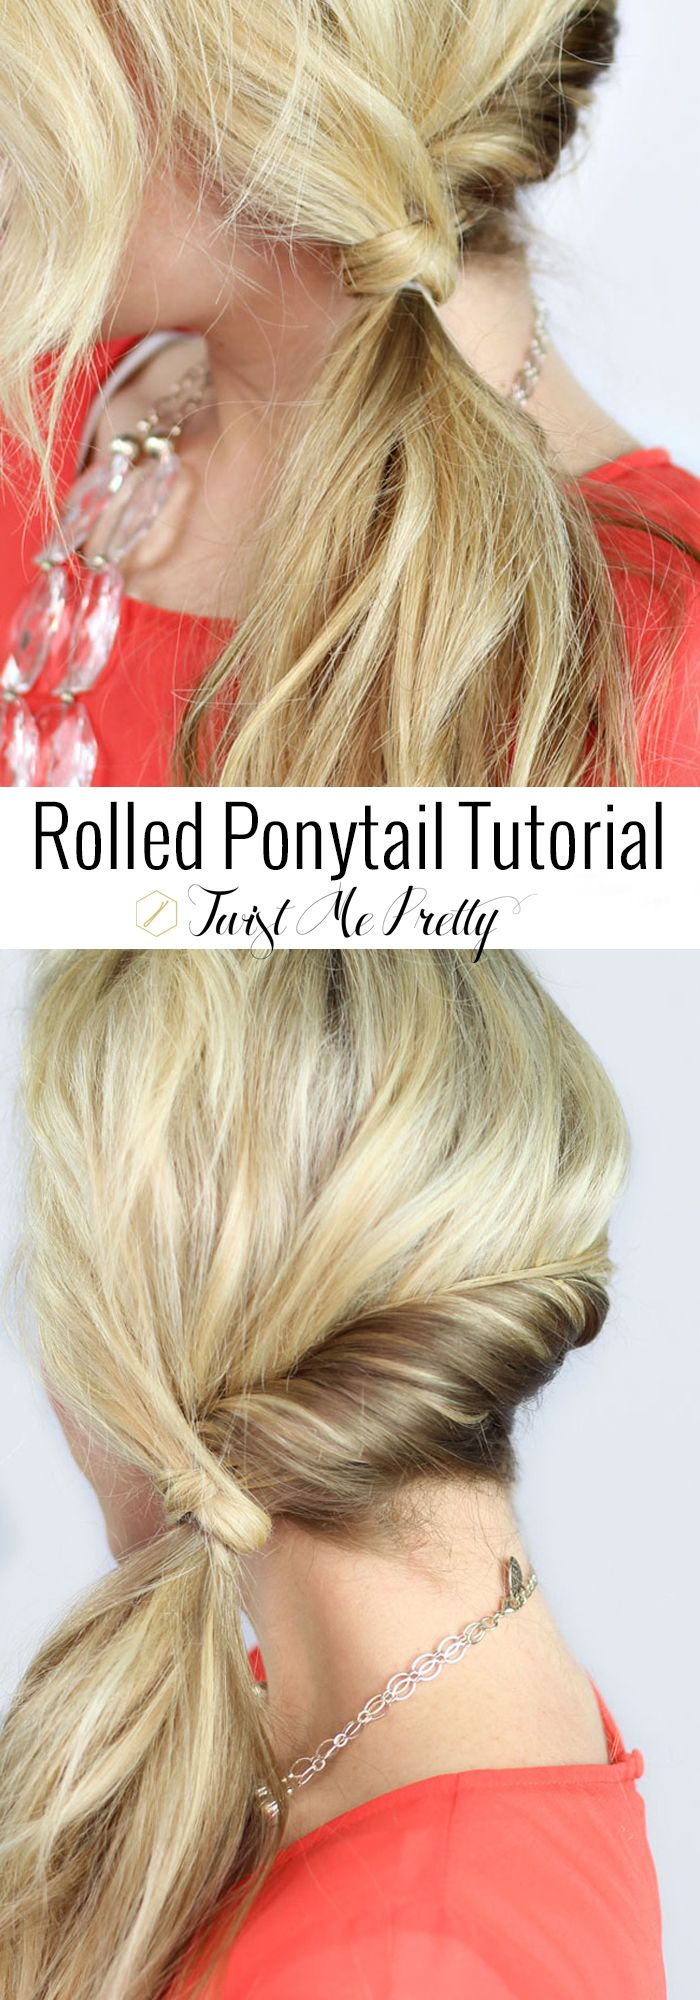 Ium such a sucker for a cute ponytail must learn this quick